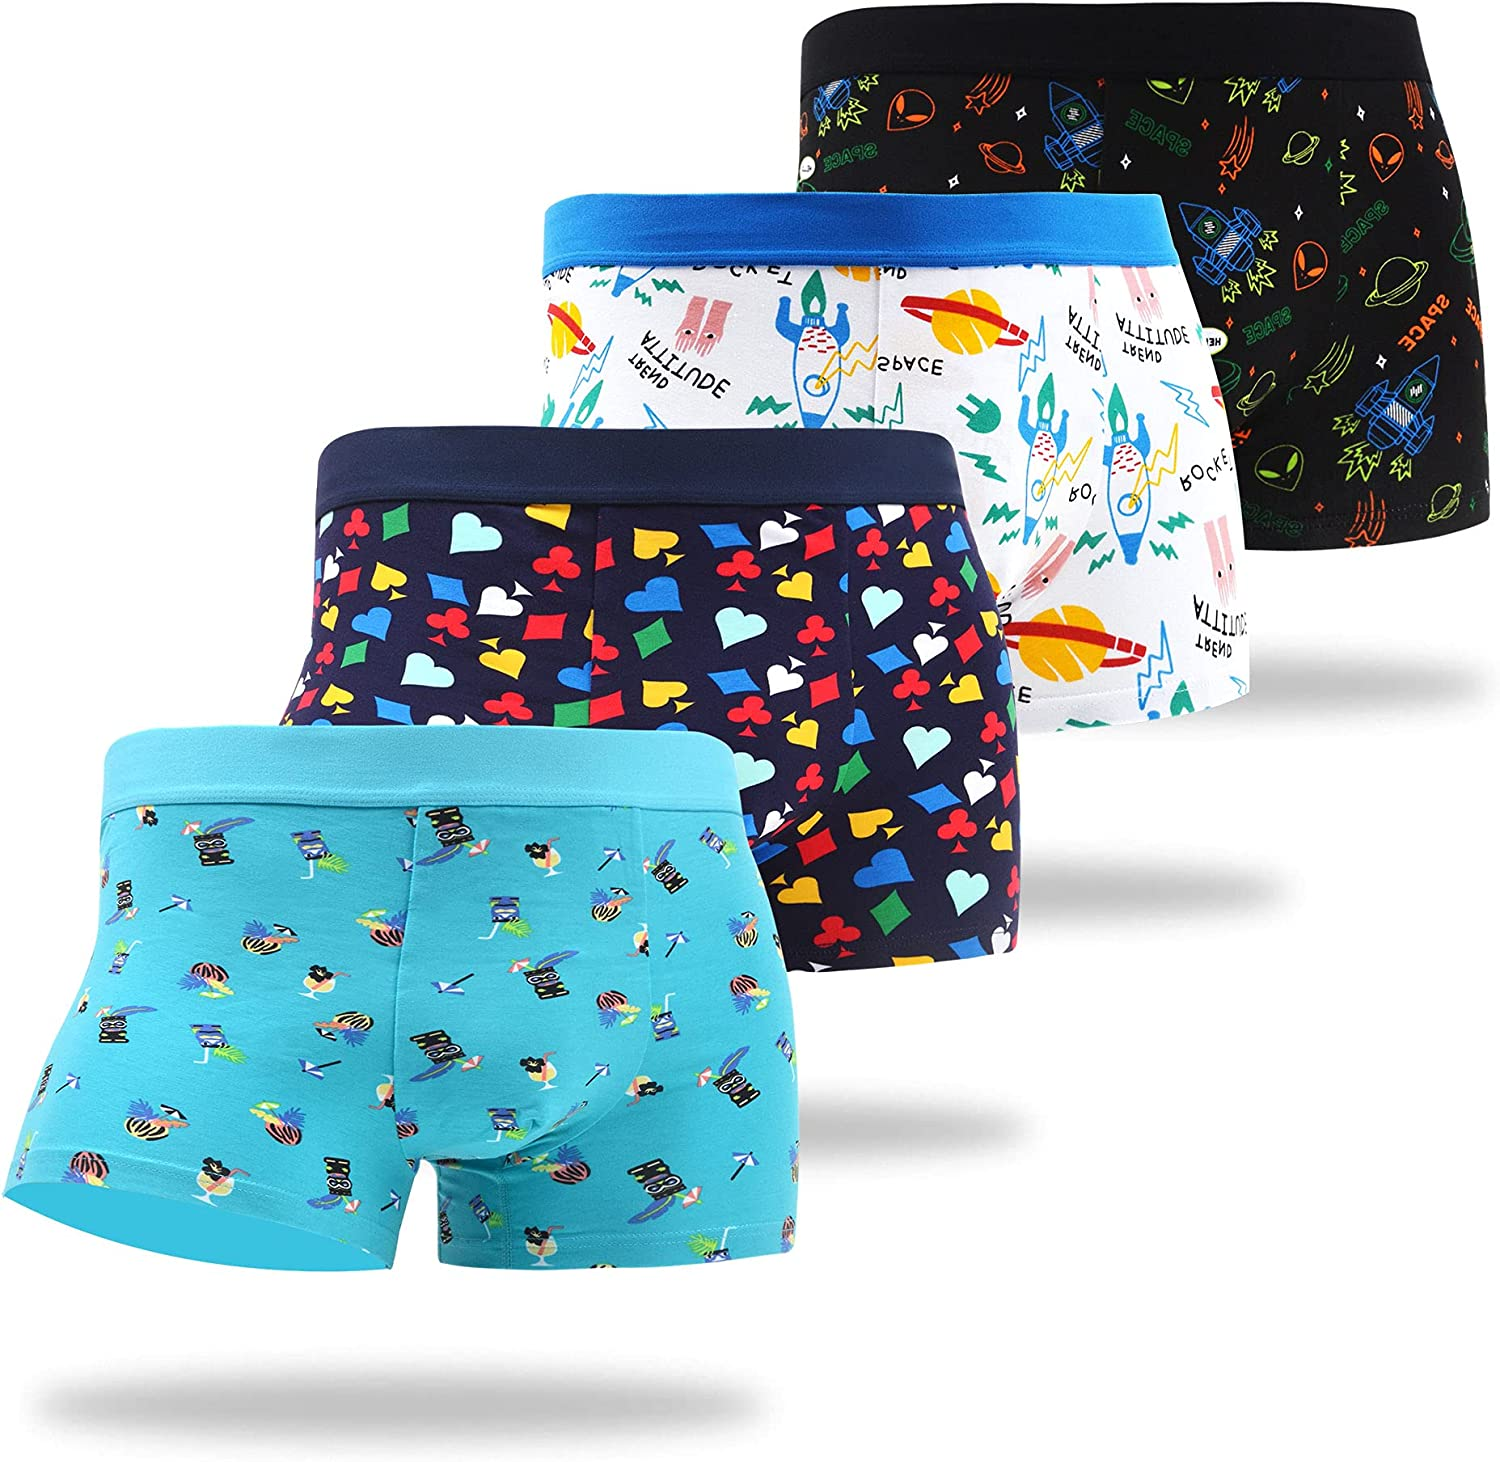 WAZATE Men's Trunks Colorful Multipack Novelty Multi Patterns Breathable Cotton Funny Gift Underwear